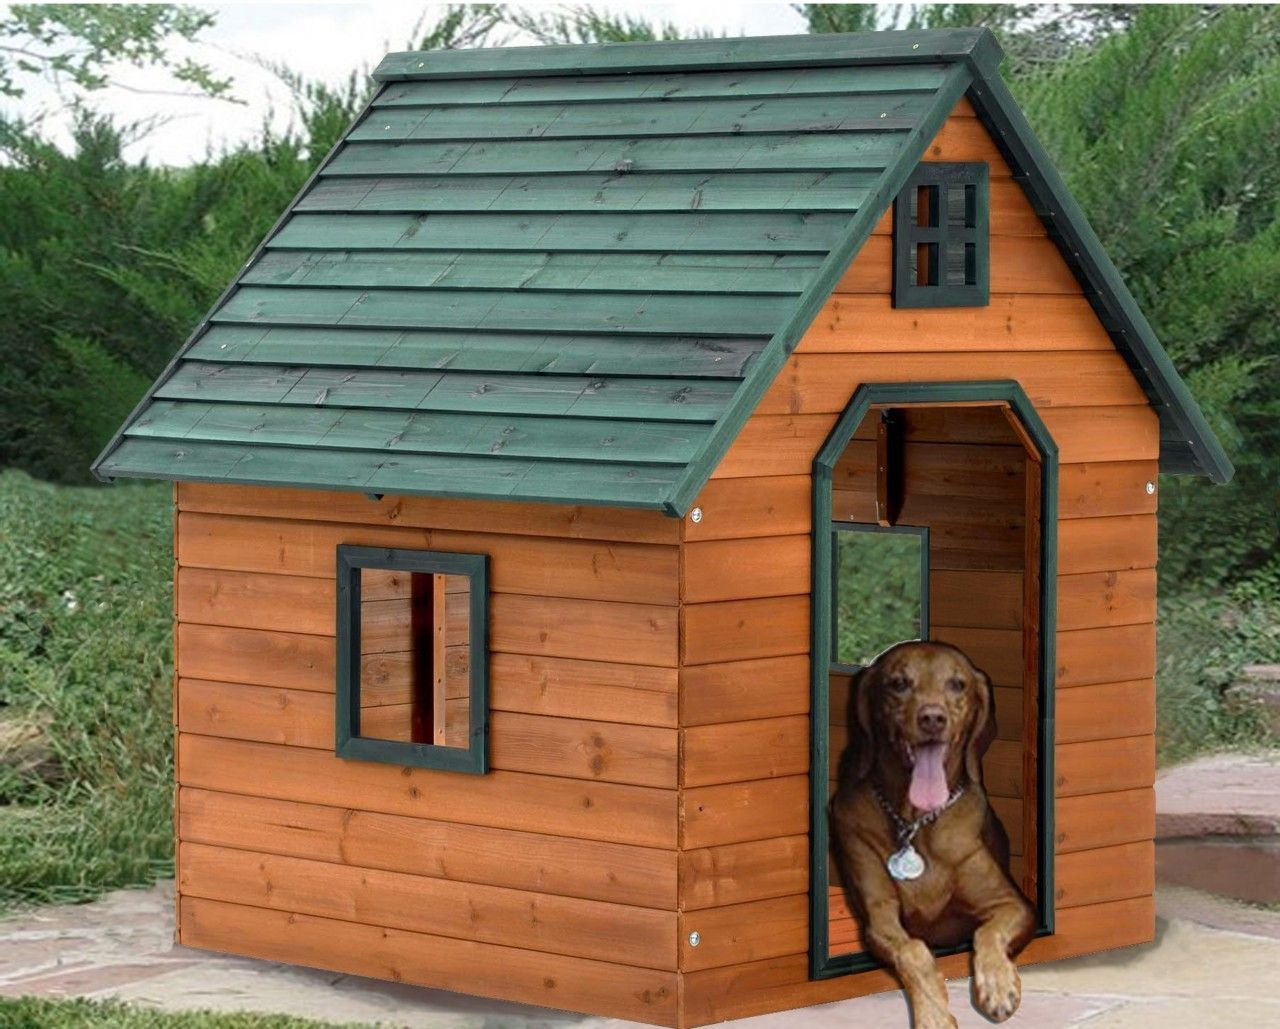 Insulated Dog House Plans Google Search Extra Large Dog House Small Dog House Large Dog House